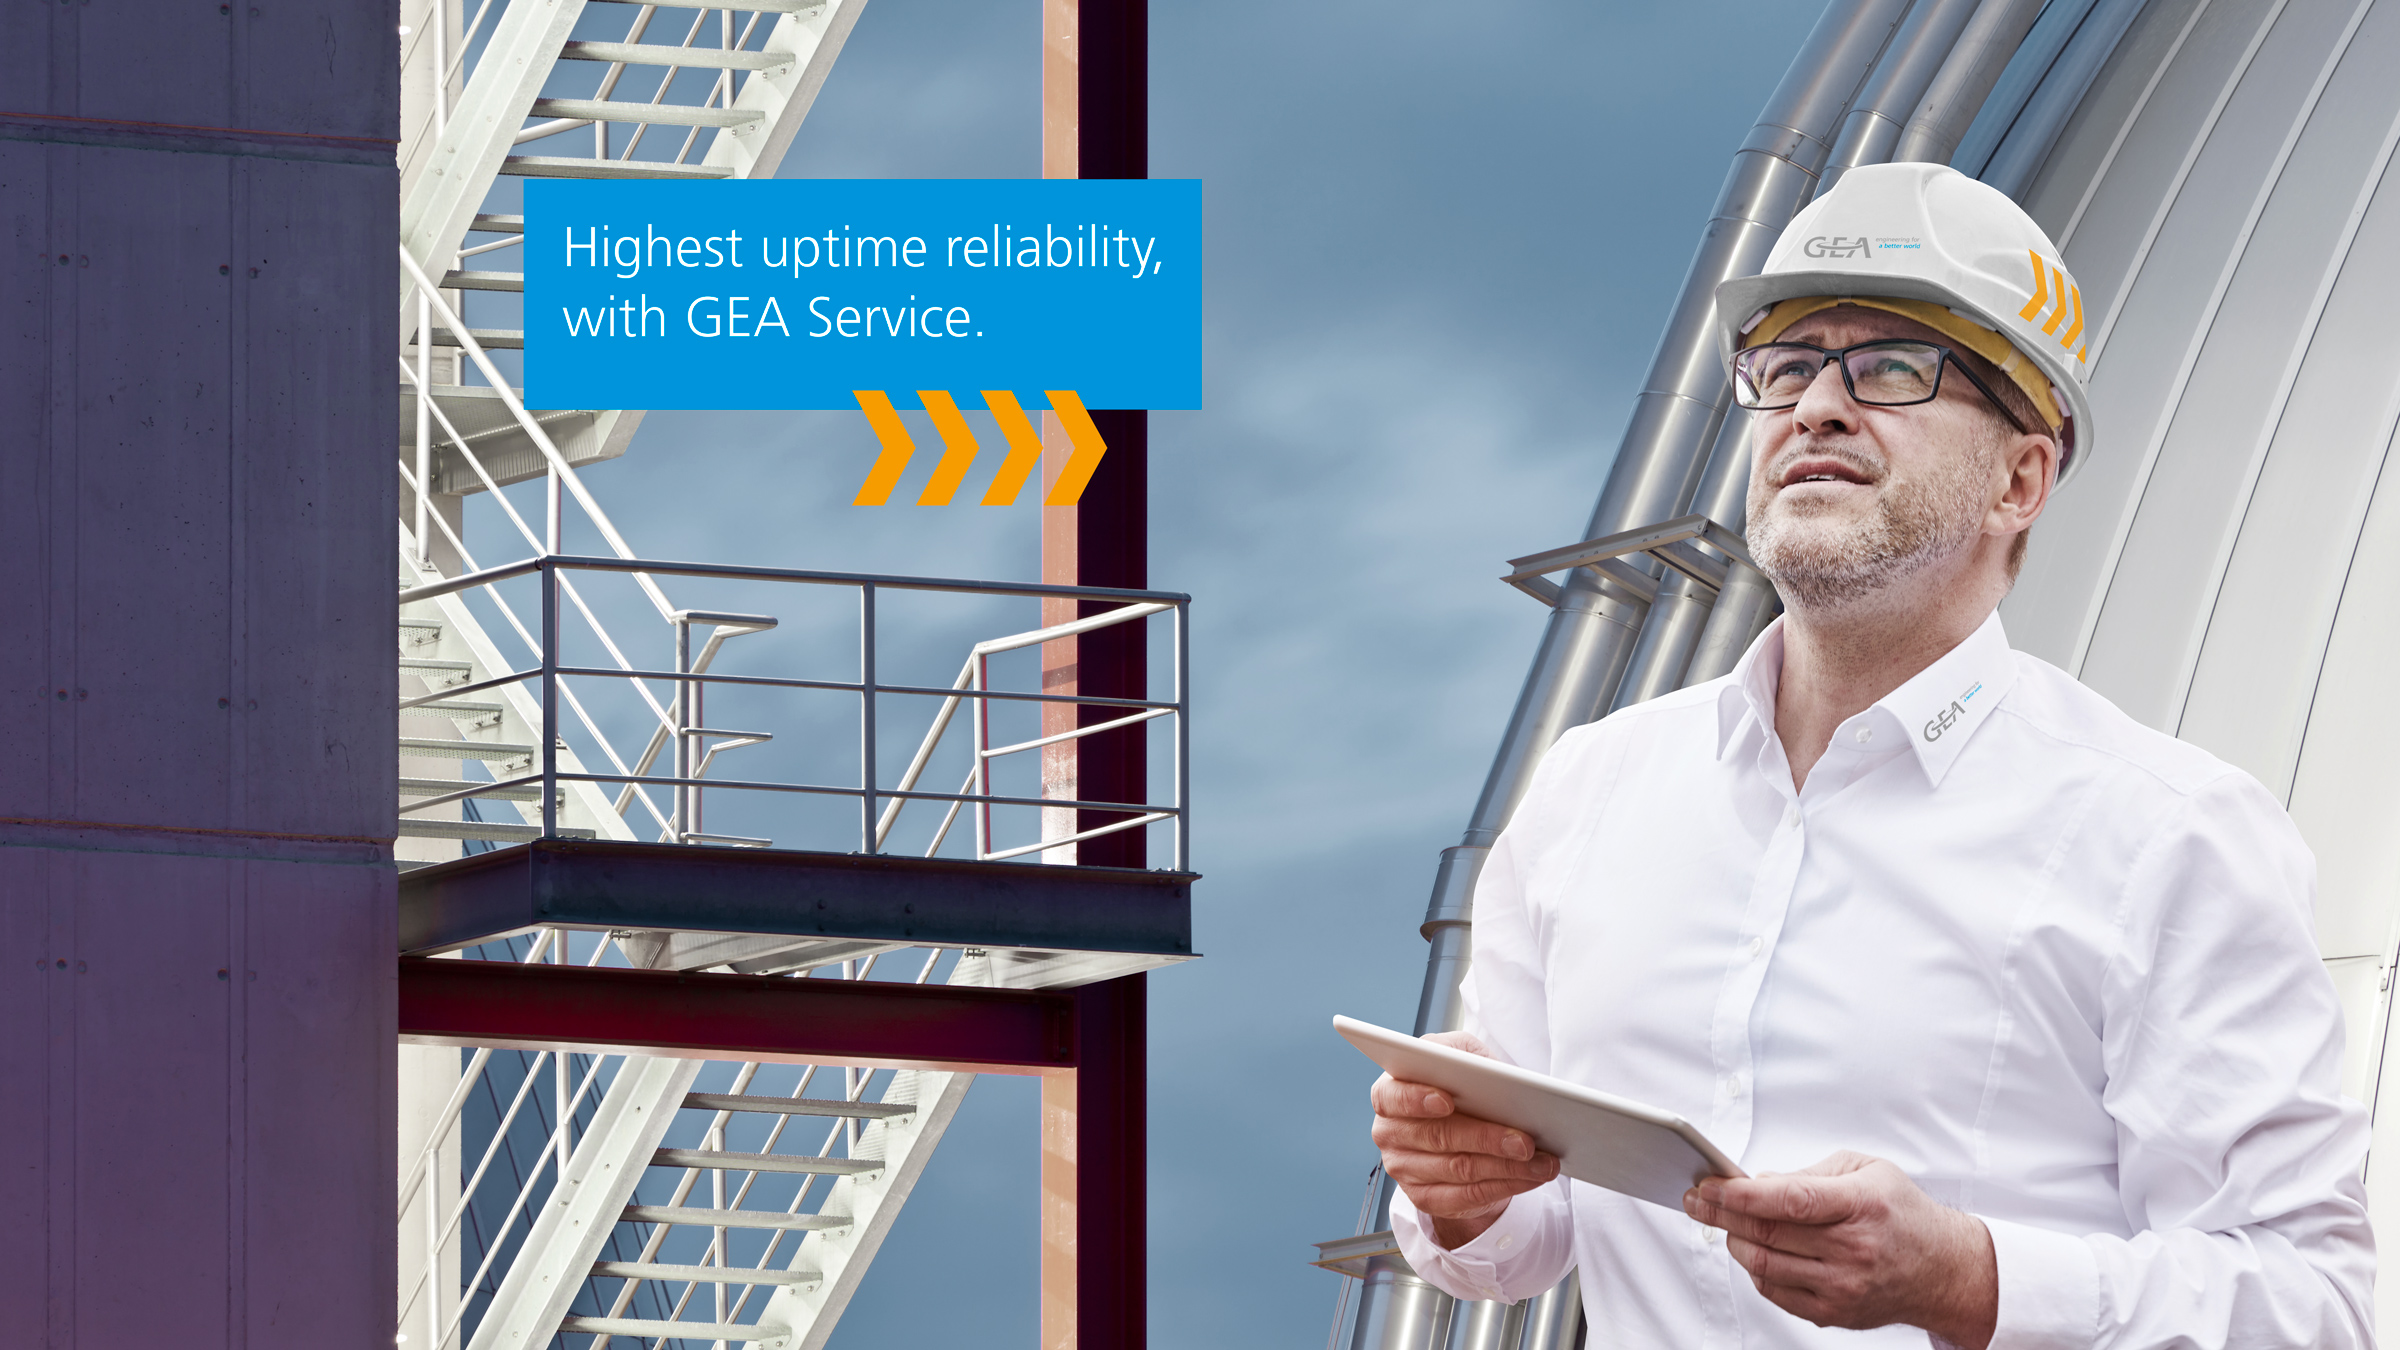 Highest uptime reliability with GEA Service